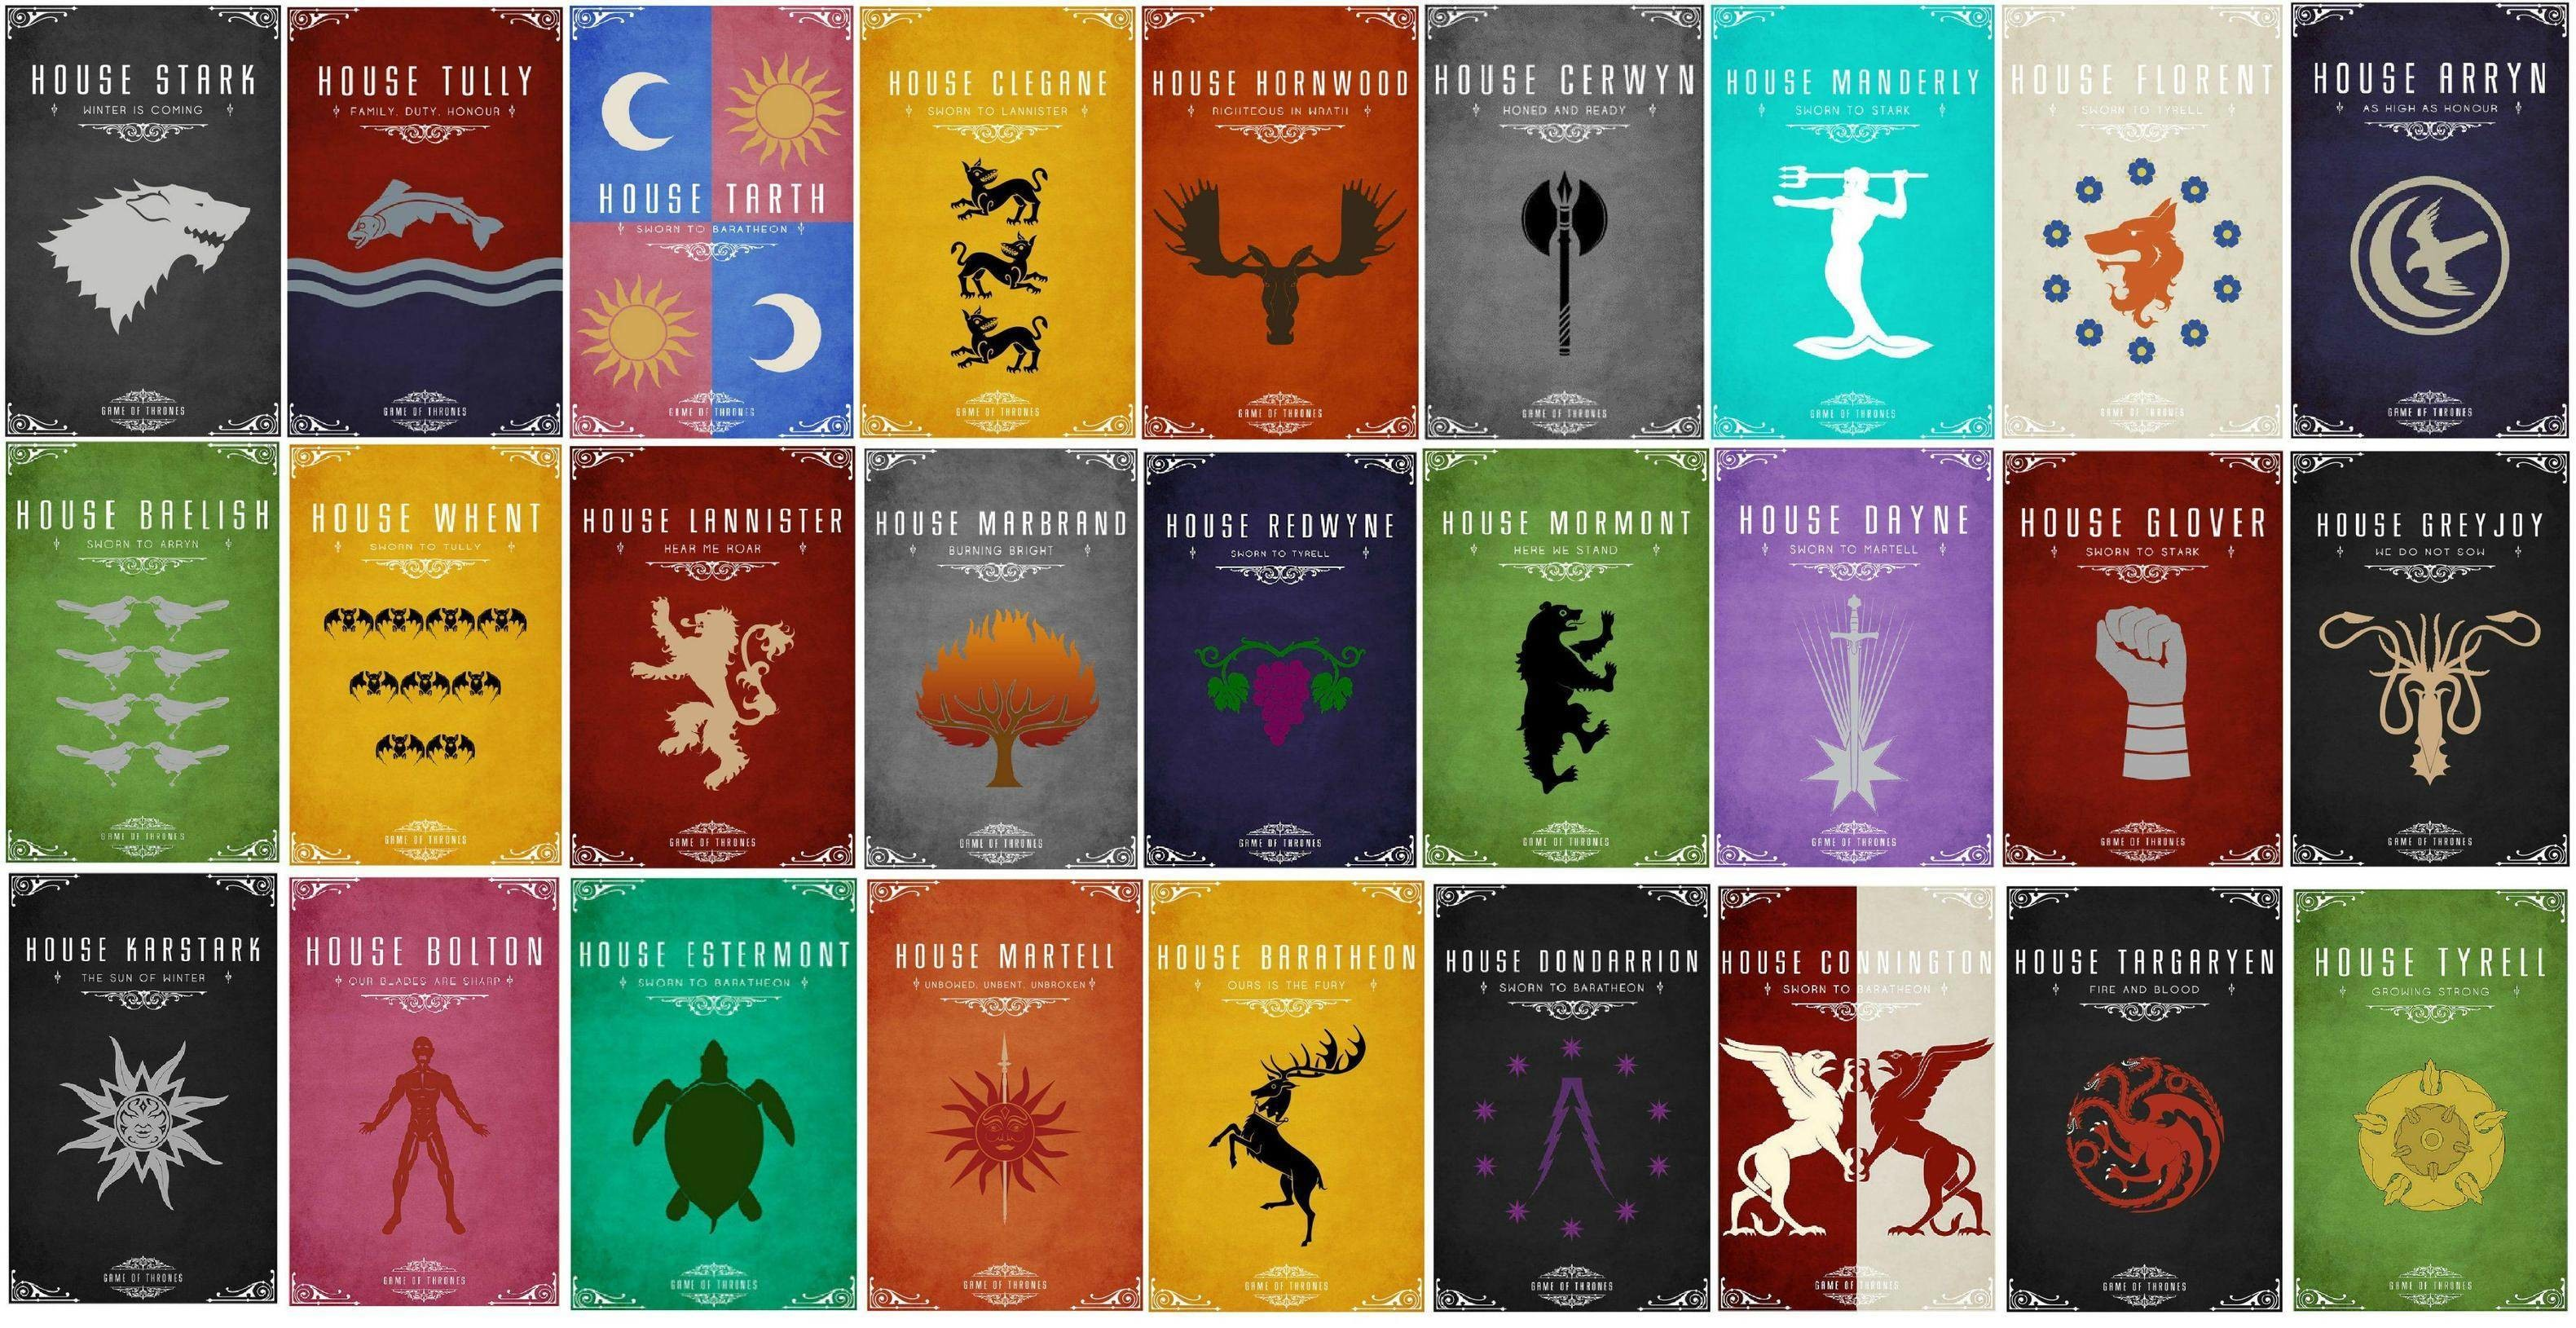 (No Spoilers) I thought you guys might appreciate this. Wallpaper with  house sigils and words. (x-post from /r/wallpapers) …